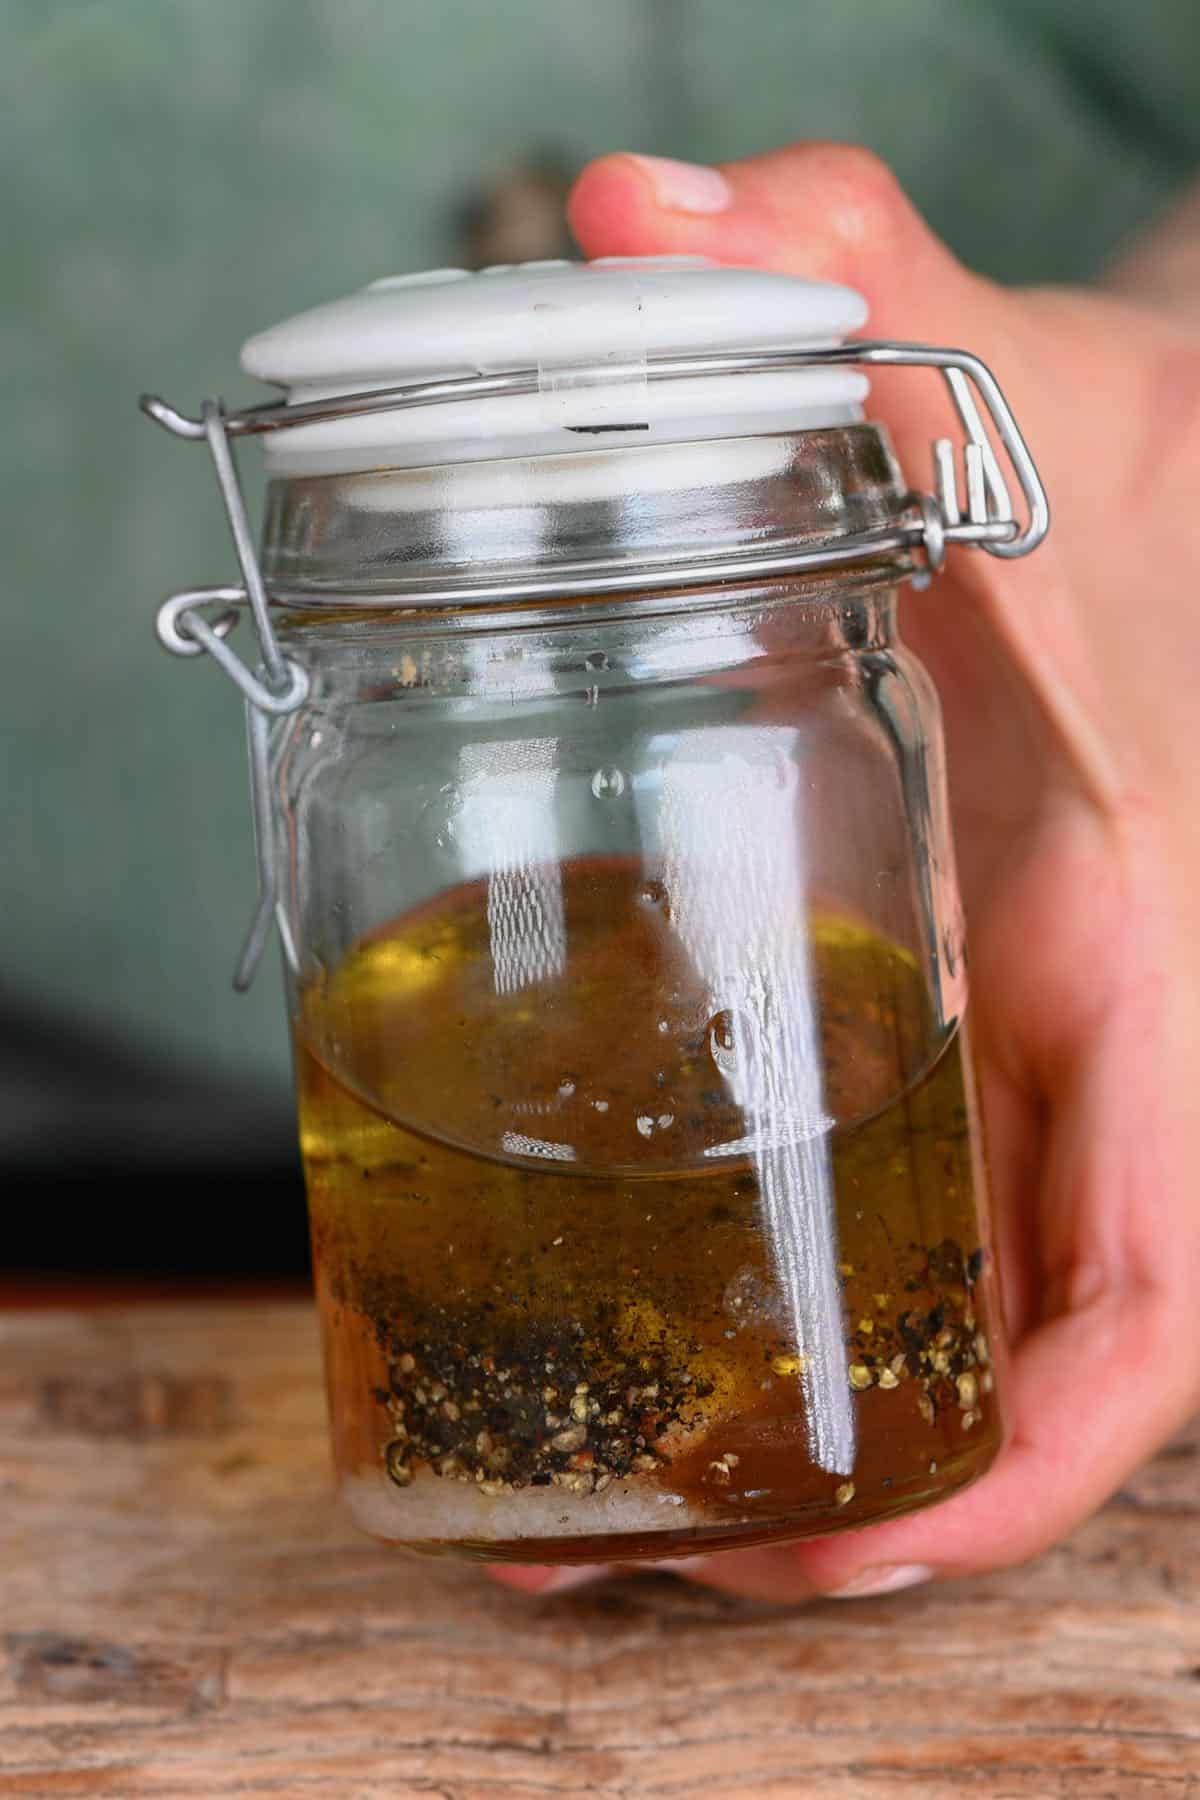 Salad dressing in a small jar ready to shake and mix